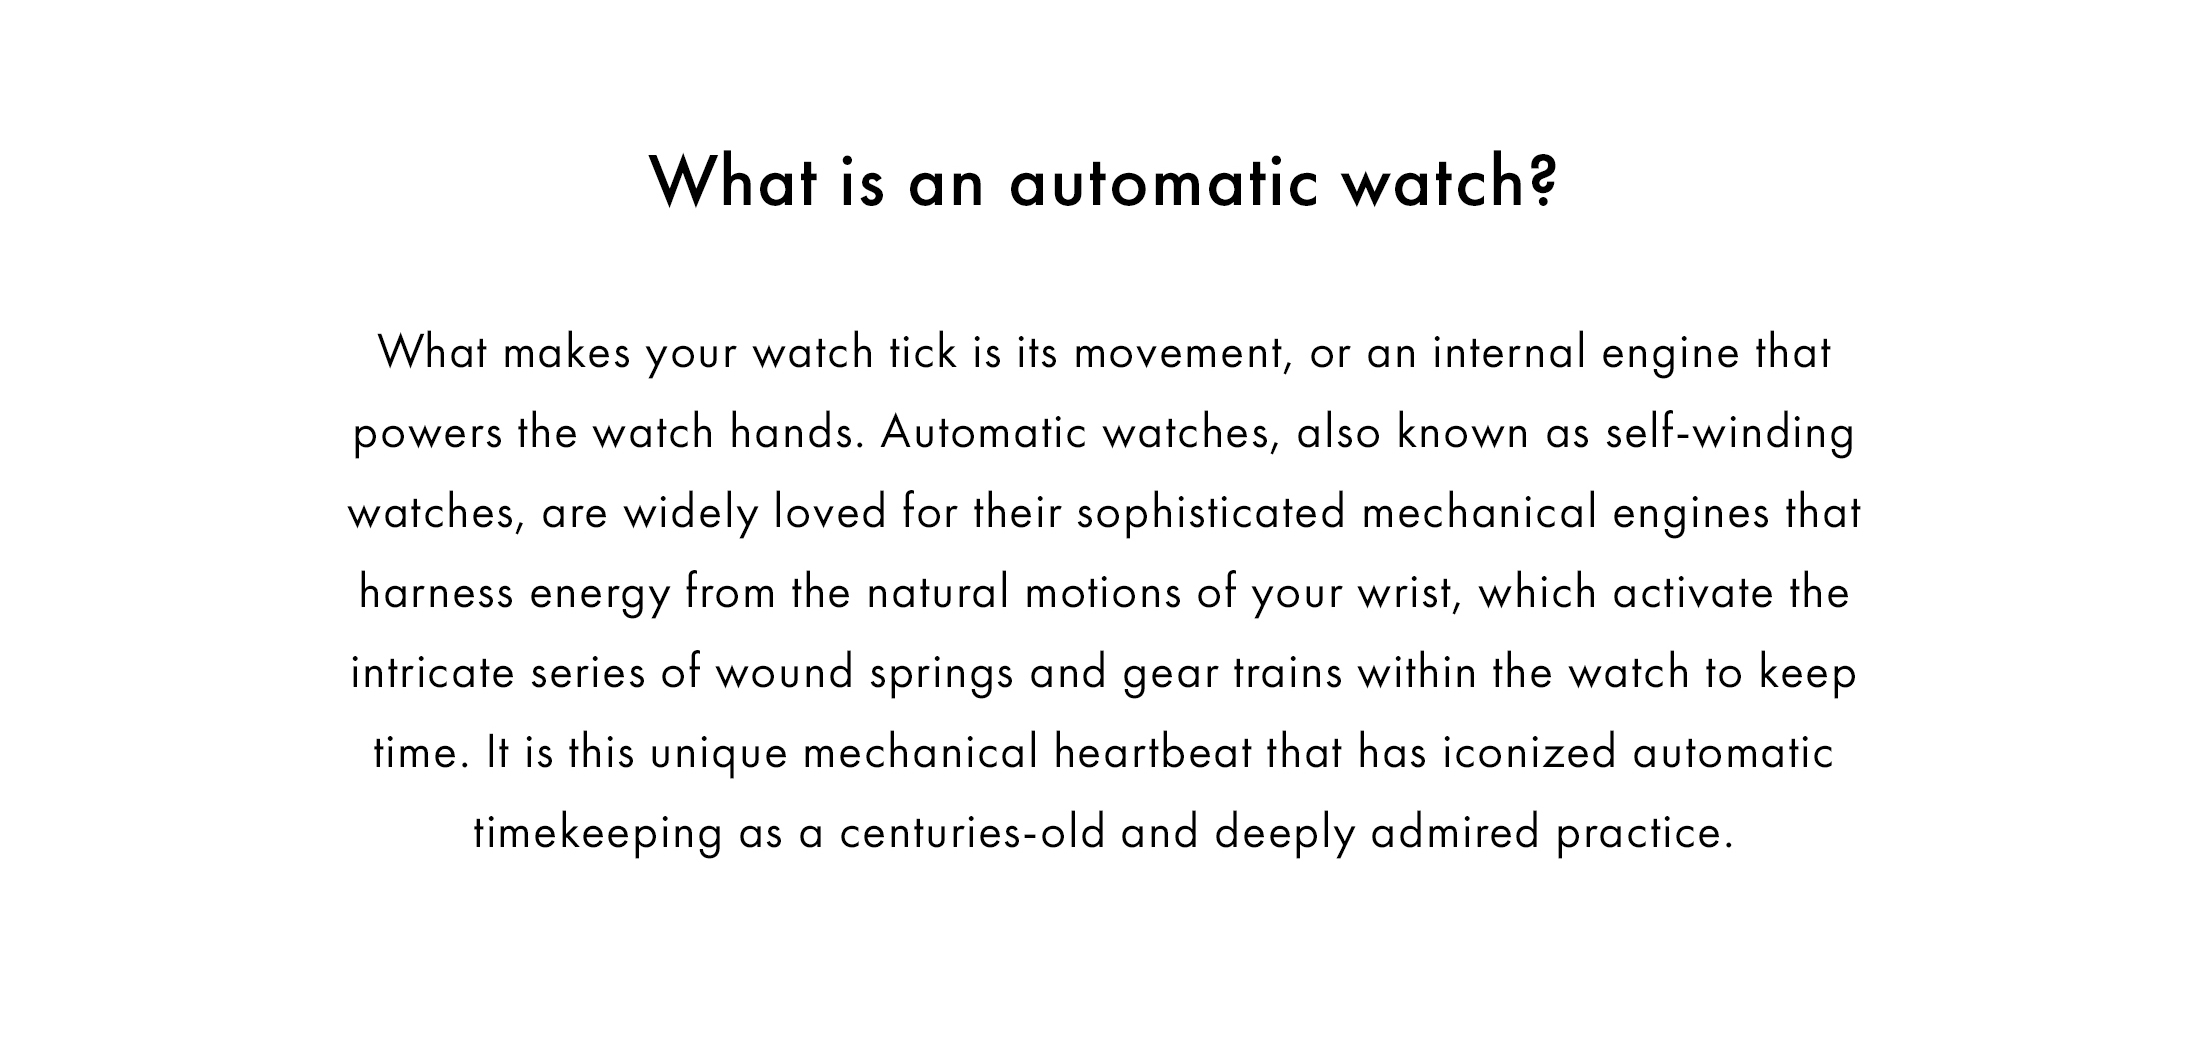 What is an automatic watch? What makes your watch tick is its movement, or an internal engine that powers the watch hands. Automatic watches, also known as self-winding watches, are widely loved for their sophisticated mechanical engines that harness energy from the natural motions of your wrist, which activate the intricate series of wound springs and gear trains within the watch to keep time. It is this unique mechanical heartbeat that has iconized automatic timekeeping as a centuries-old and deeply admired practice.